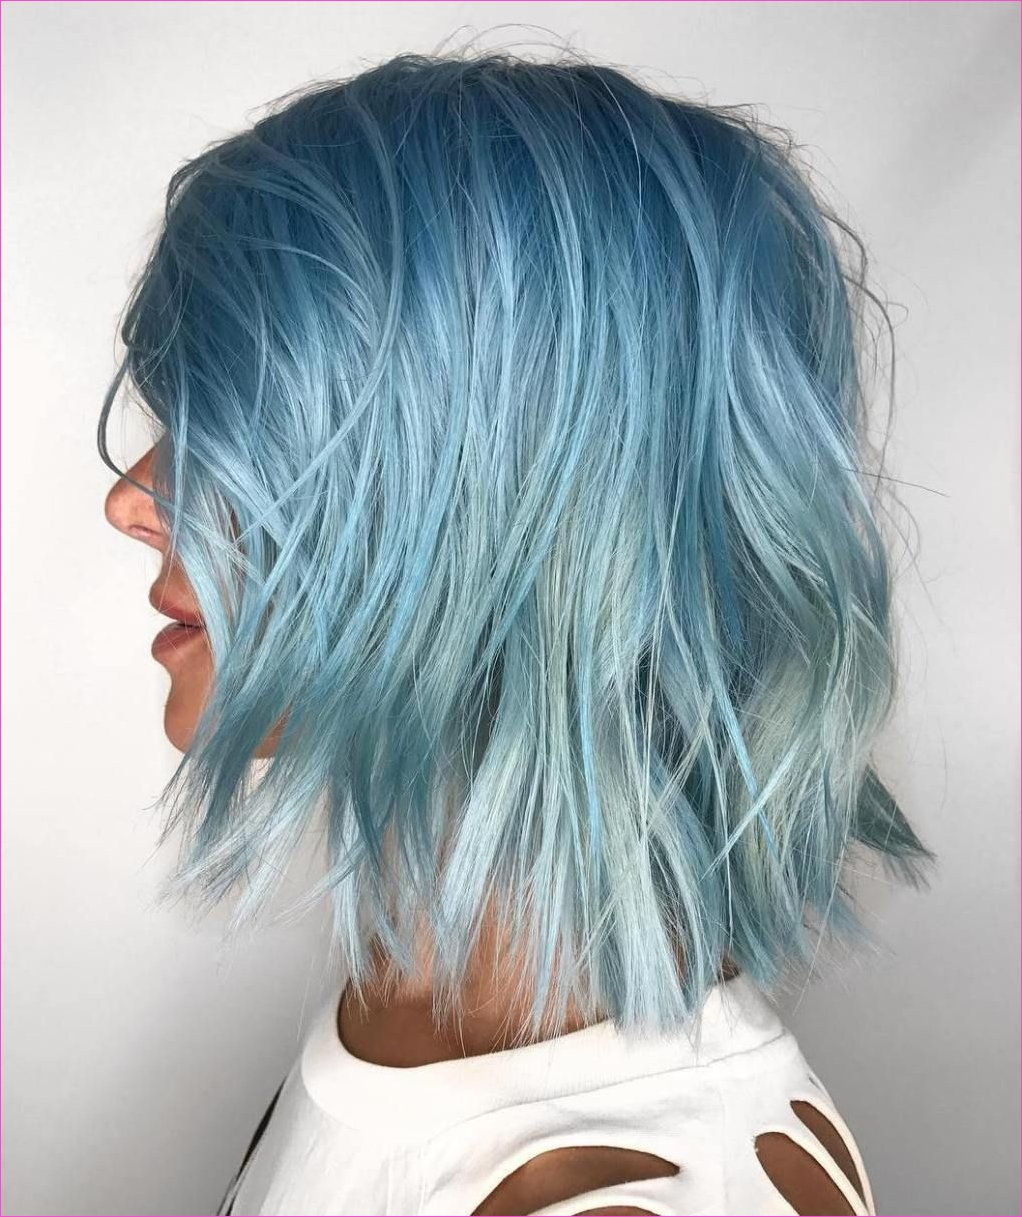 30 Icy Light Blue Hair Color Ideas for Girls in 2019 | Trends